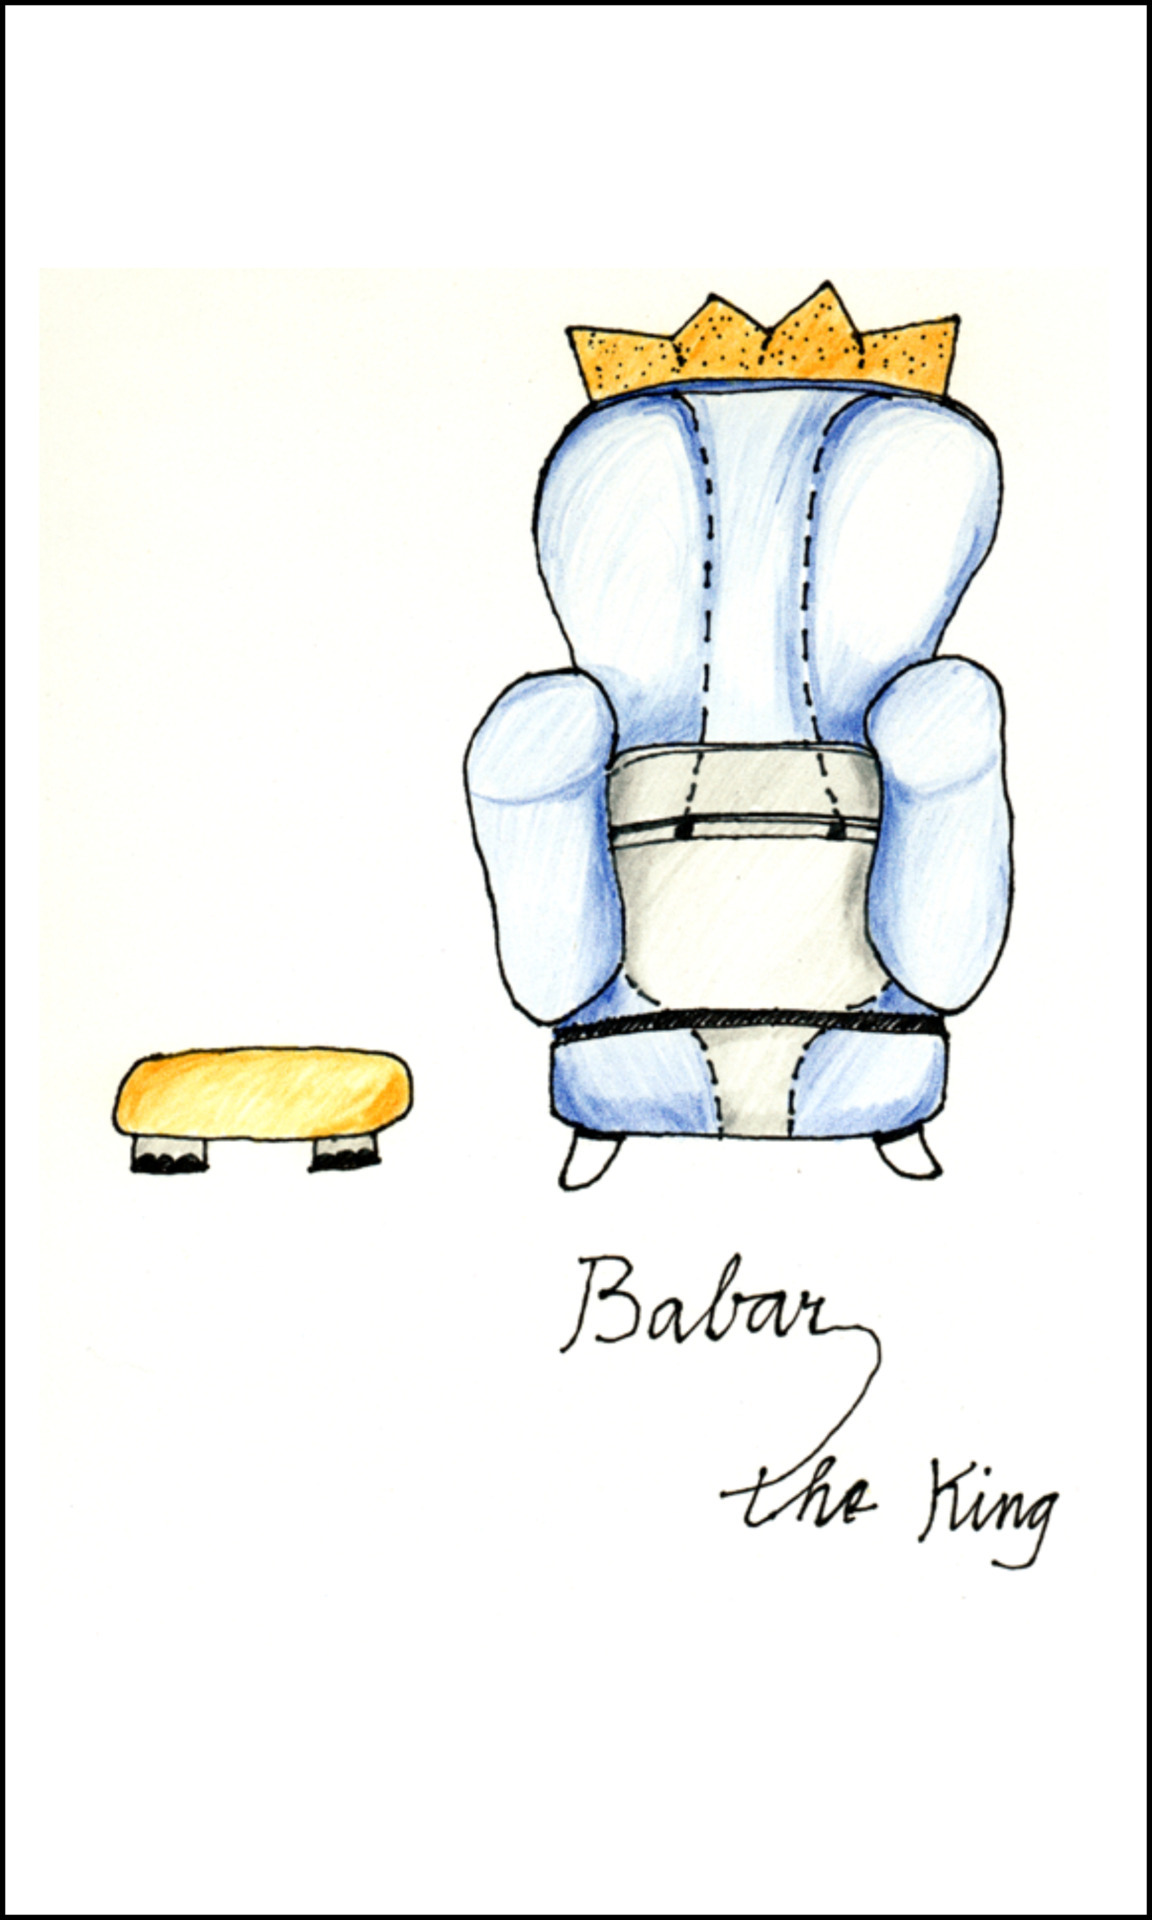 Babar the King: stuffed just so chair and foot rest (pen & pencil drawing